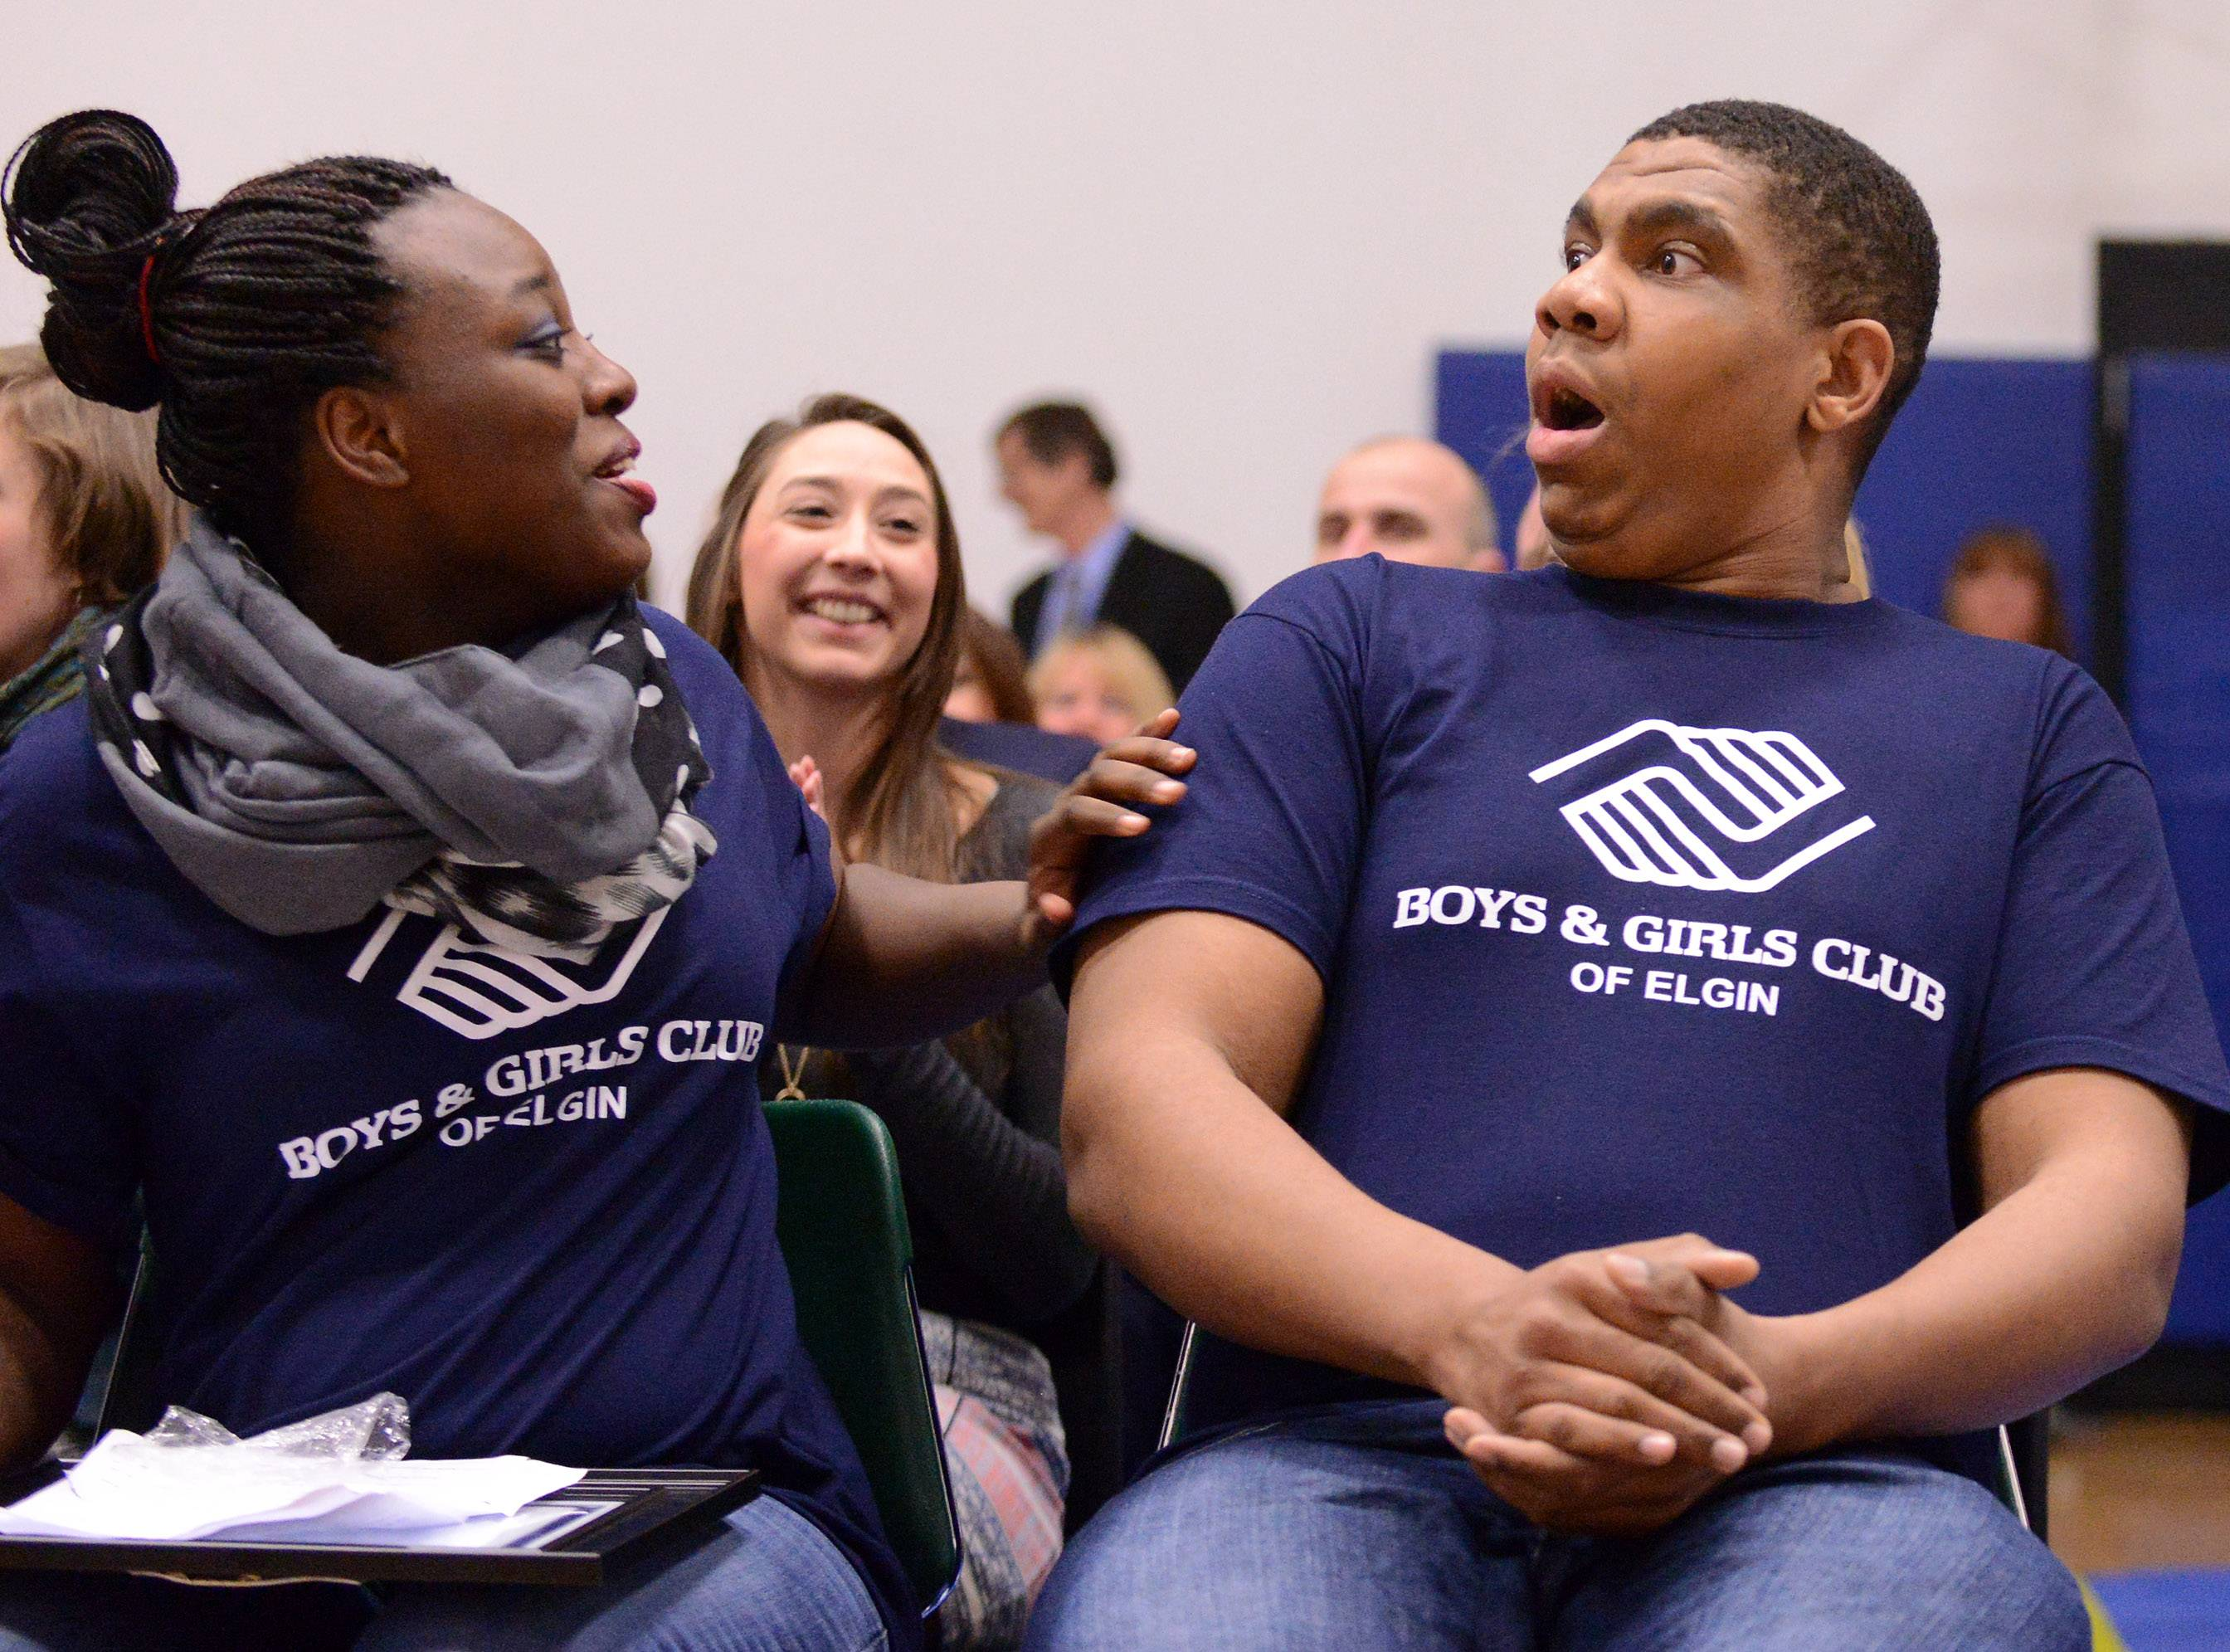 Chris Holling, an Elgin High School junior, is surprised after being selected Youth of the Year earlier this week by the Boys & Girls Club of Elgin.